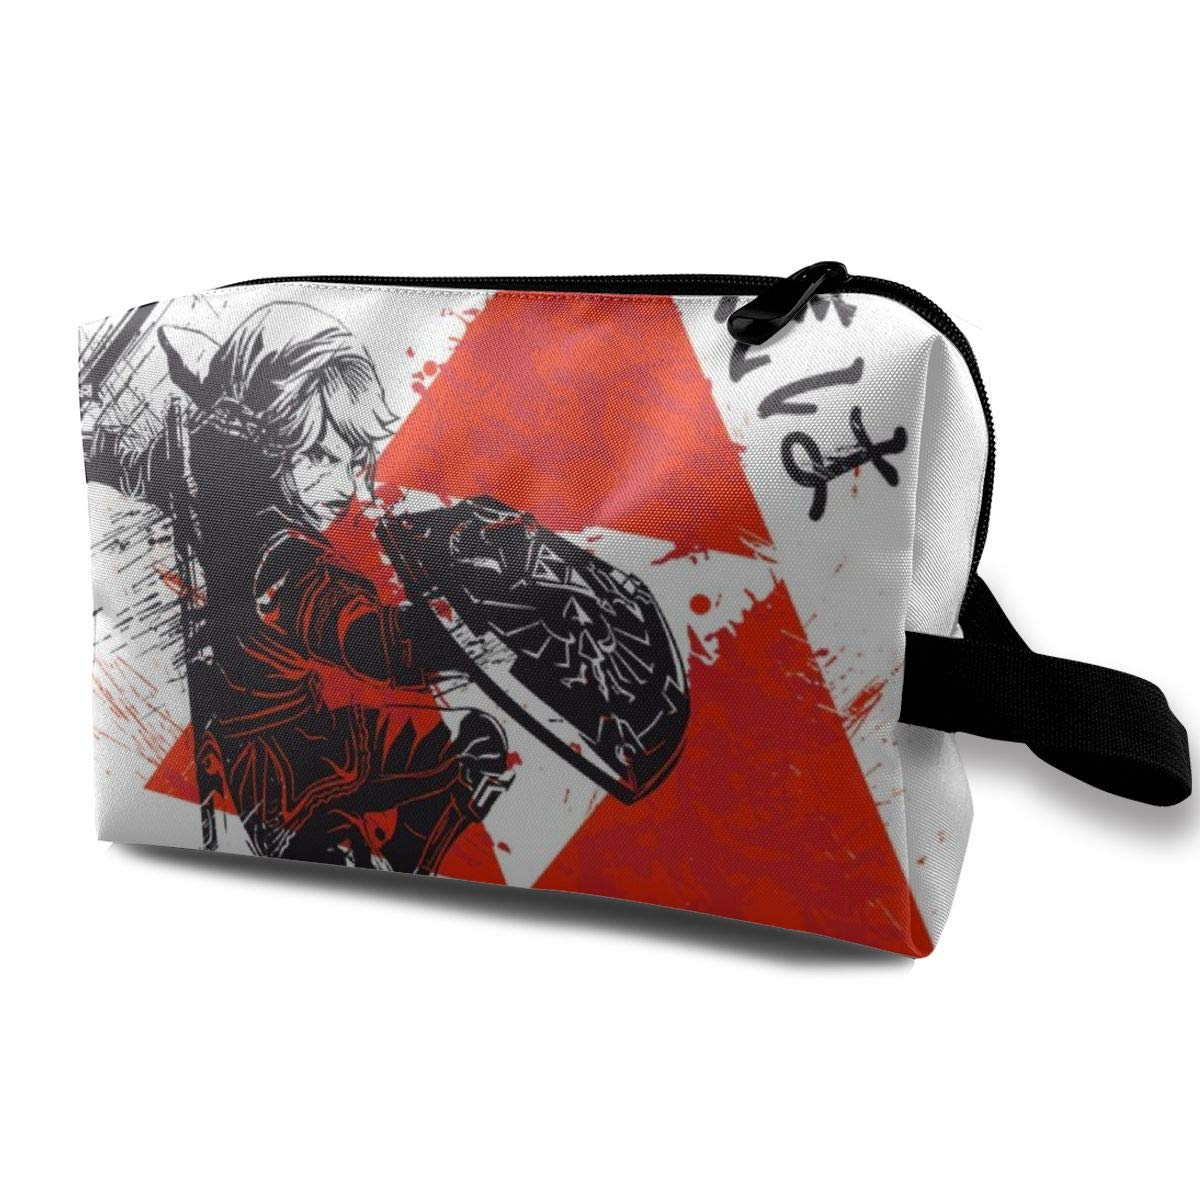 Makeup Bag Cosmetic Pouch Red Sun Hyrule Legend Of Zelda Multi-Functional Bag Travel Kit Storage Bag